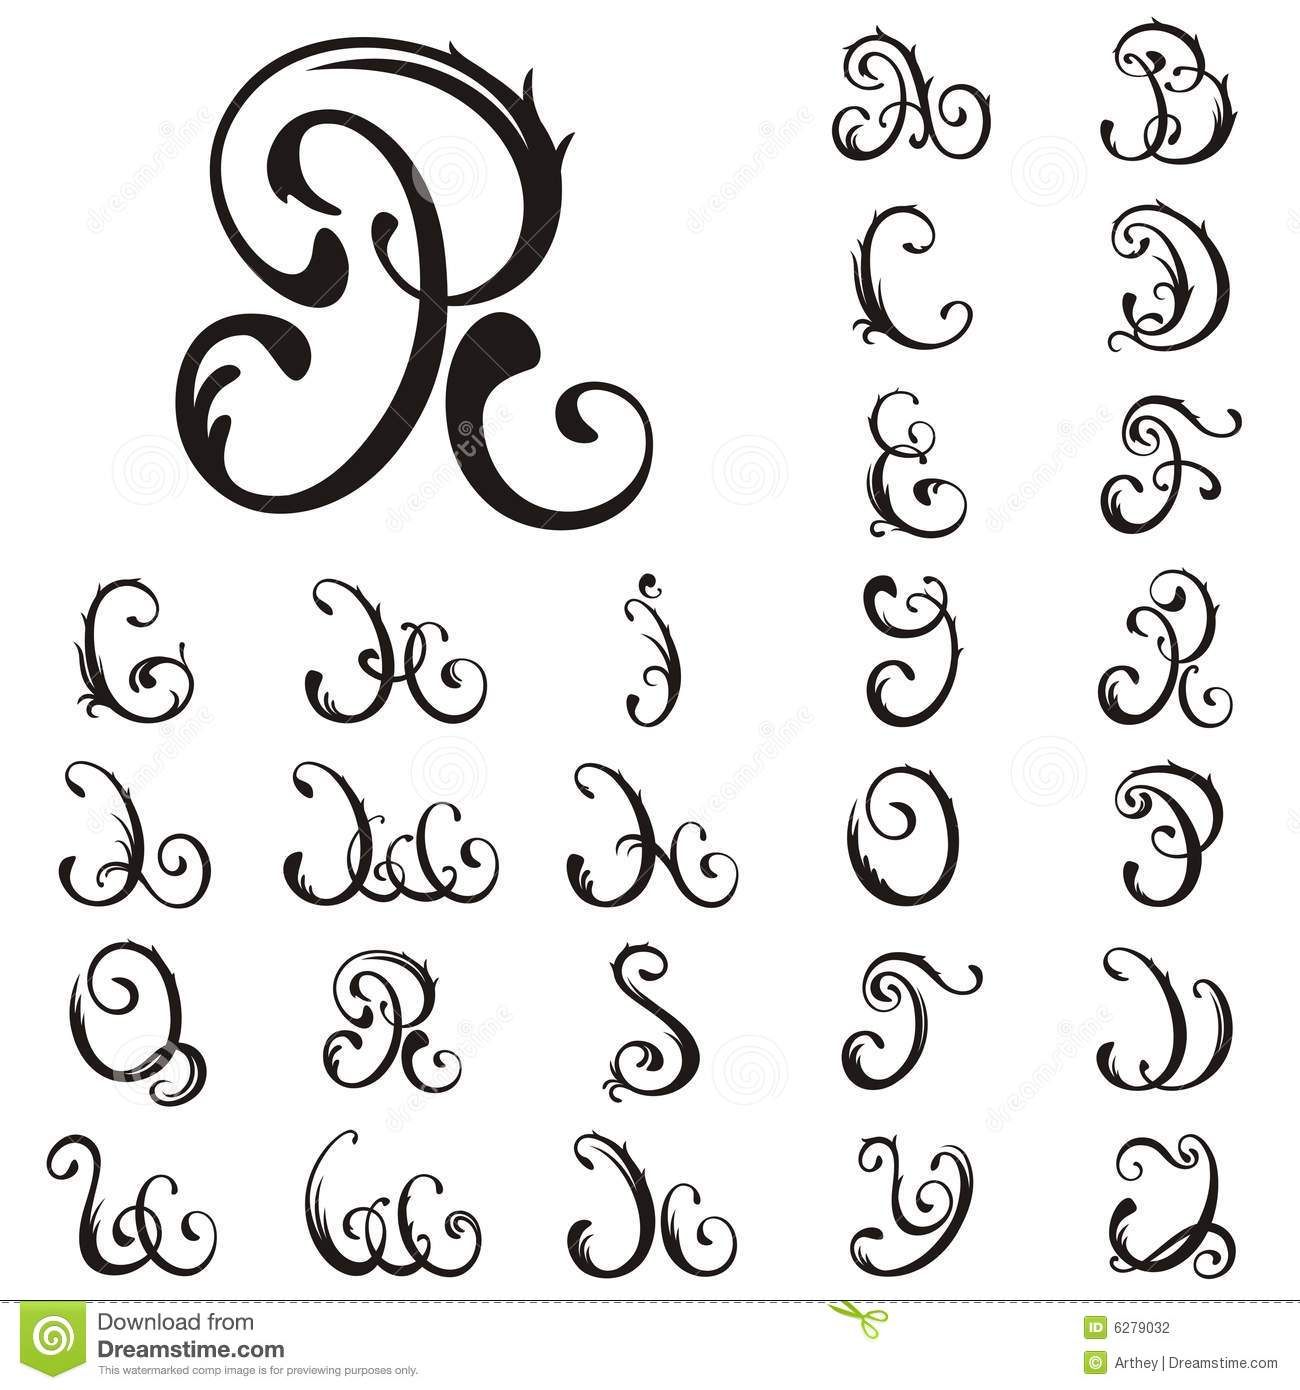 How To Do A Capital T In Cursive